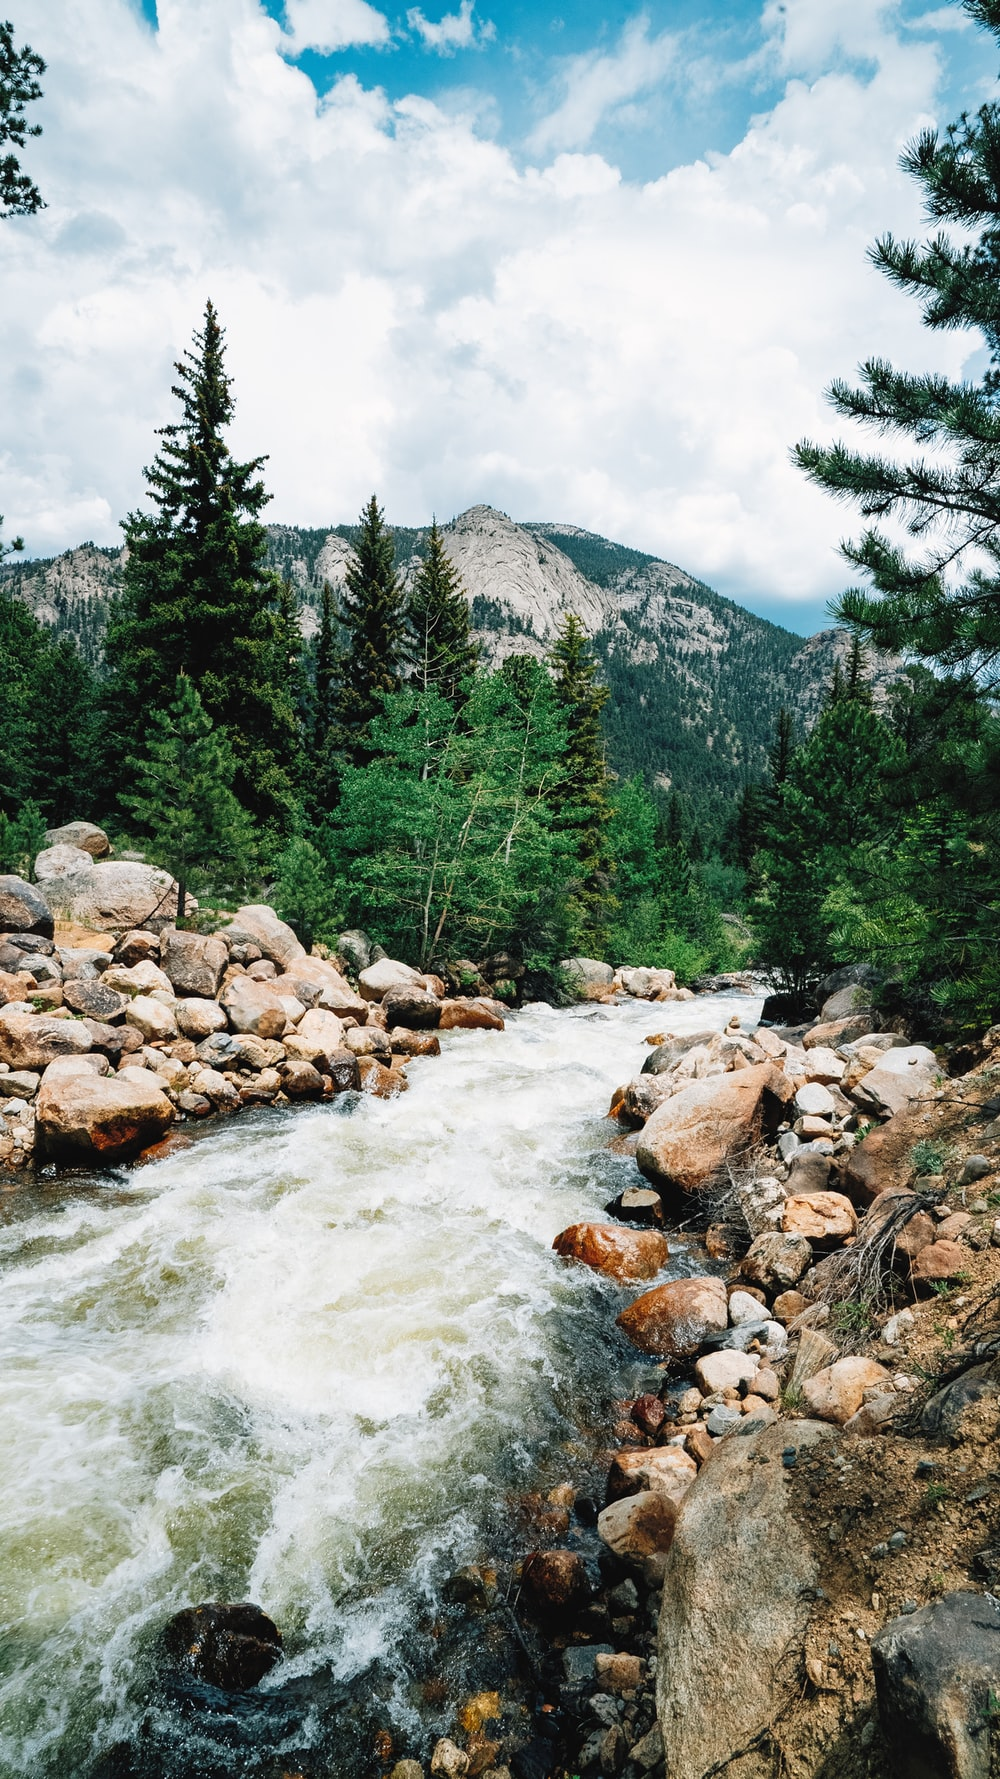 photography of river and pine trees